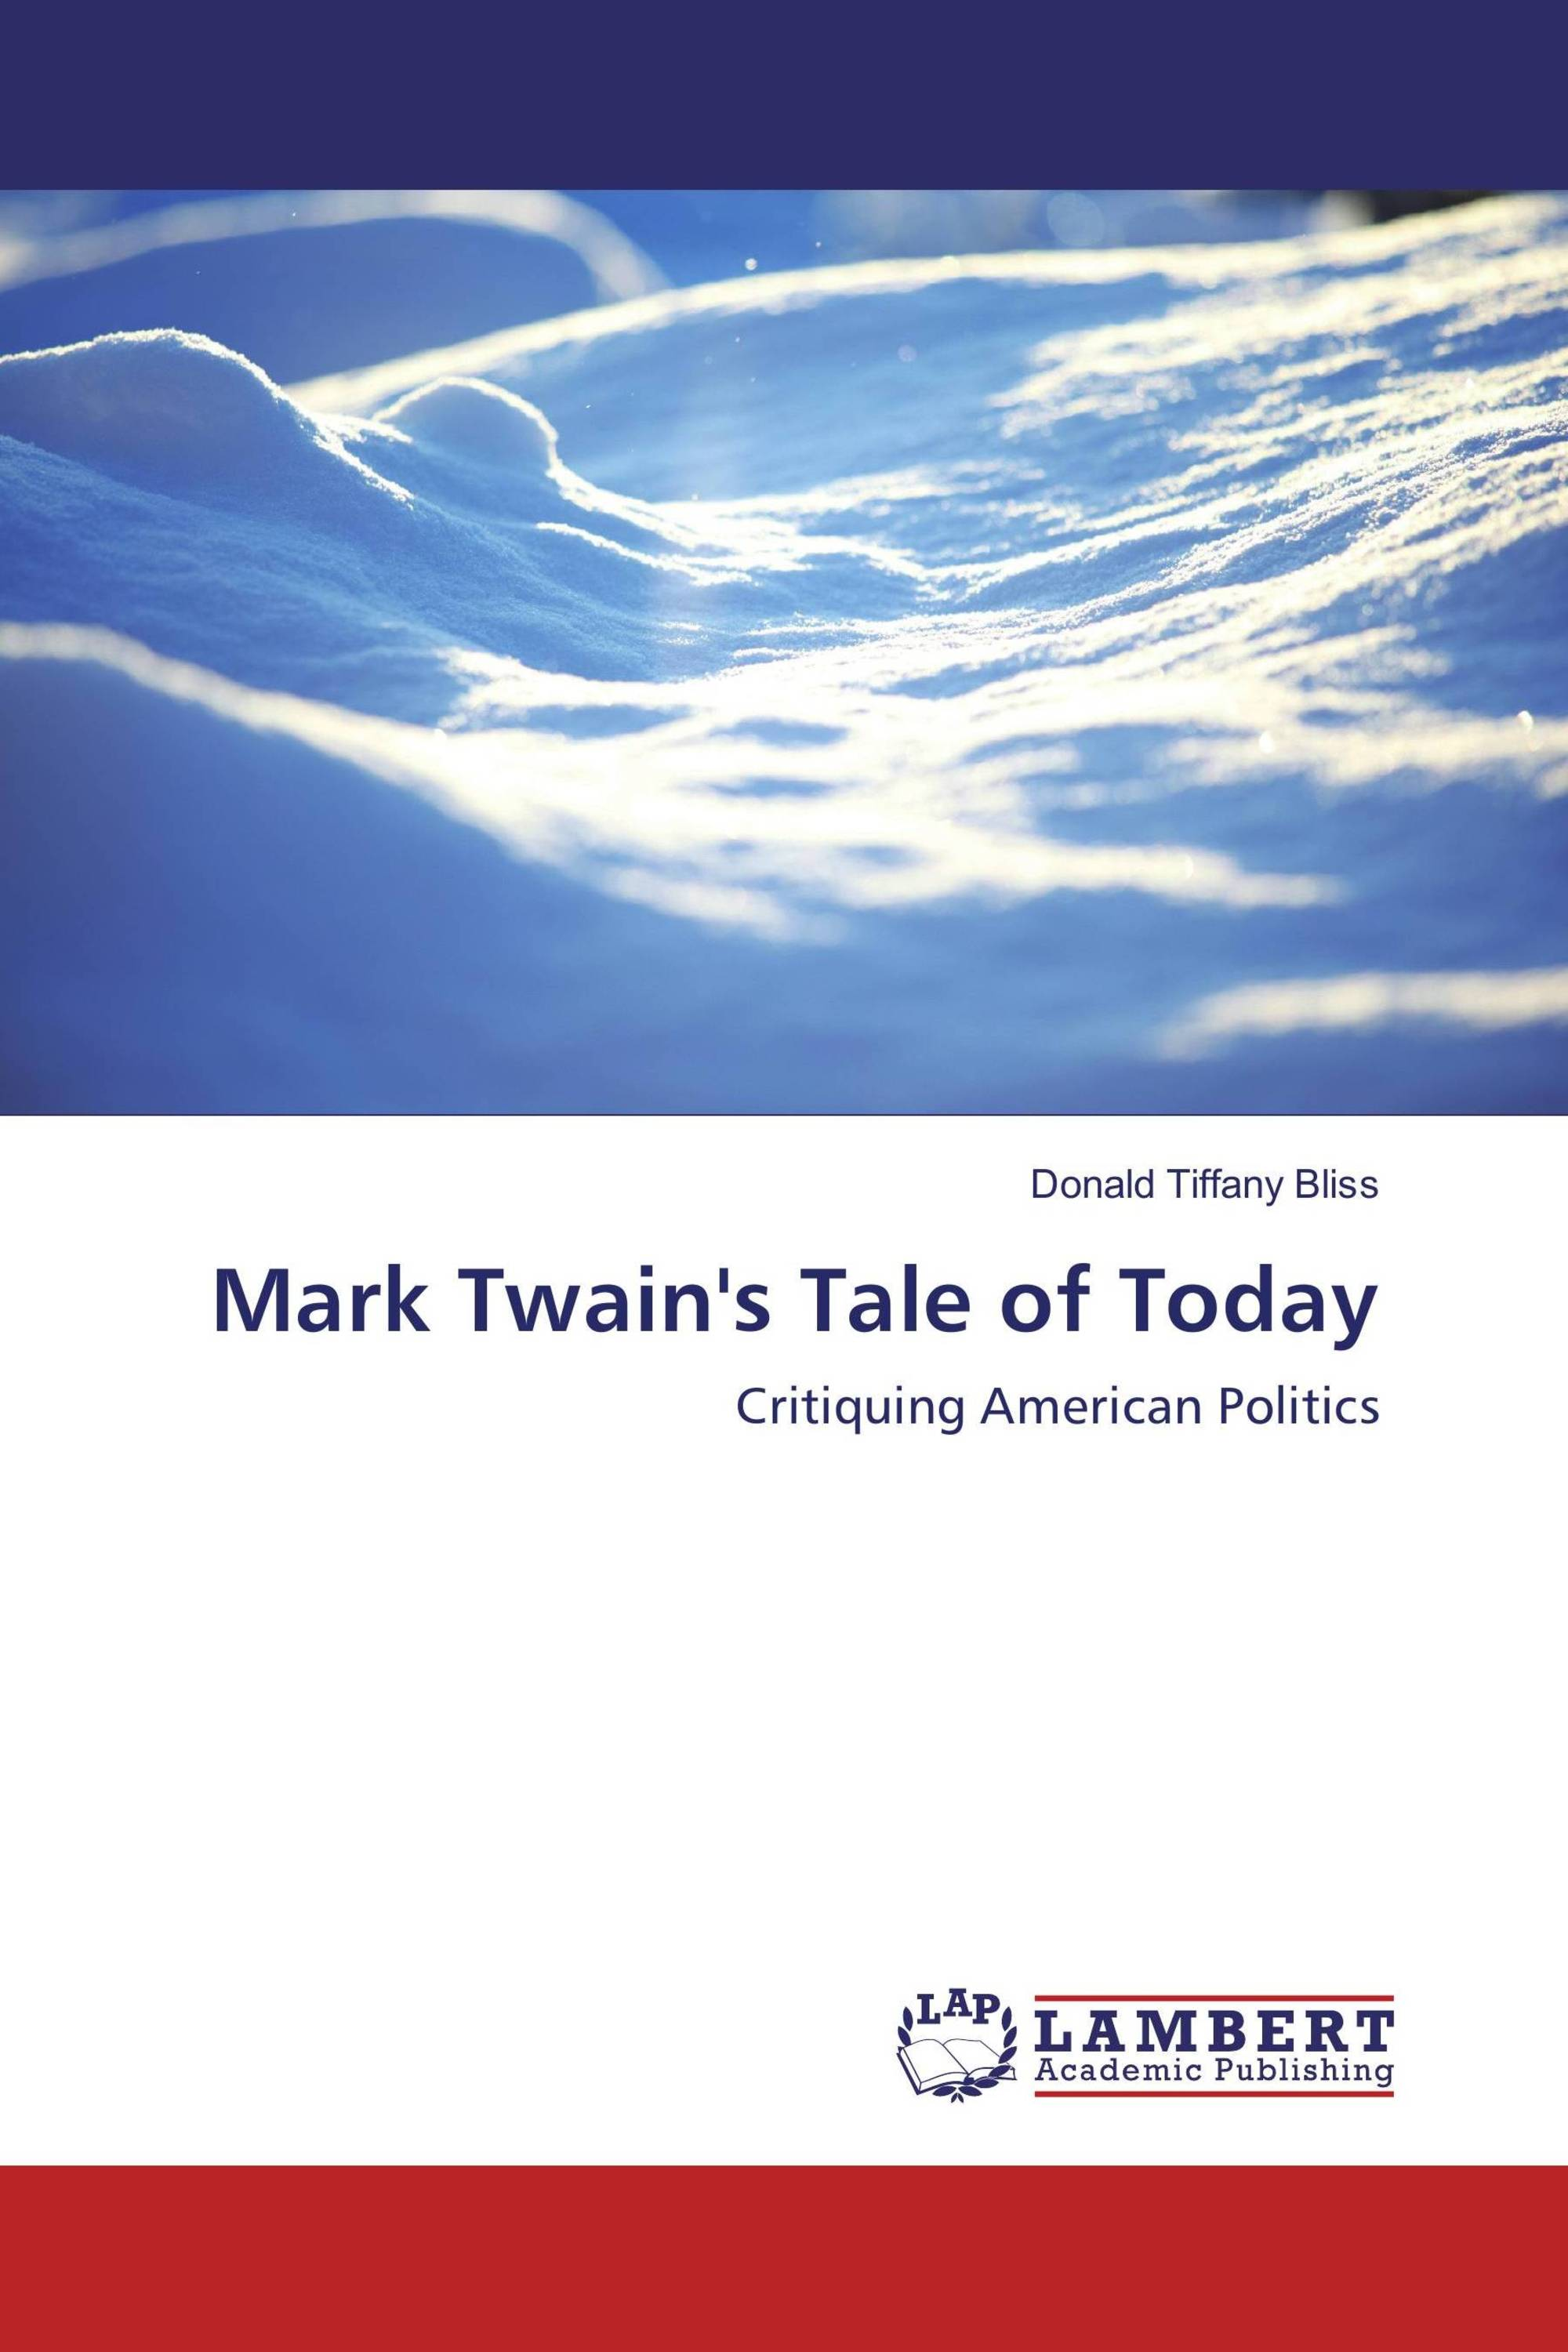 Mark Twain's Tale of Today